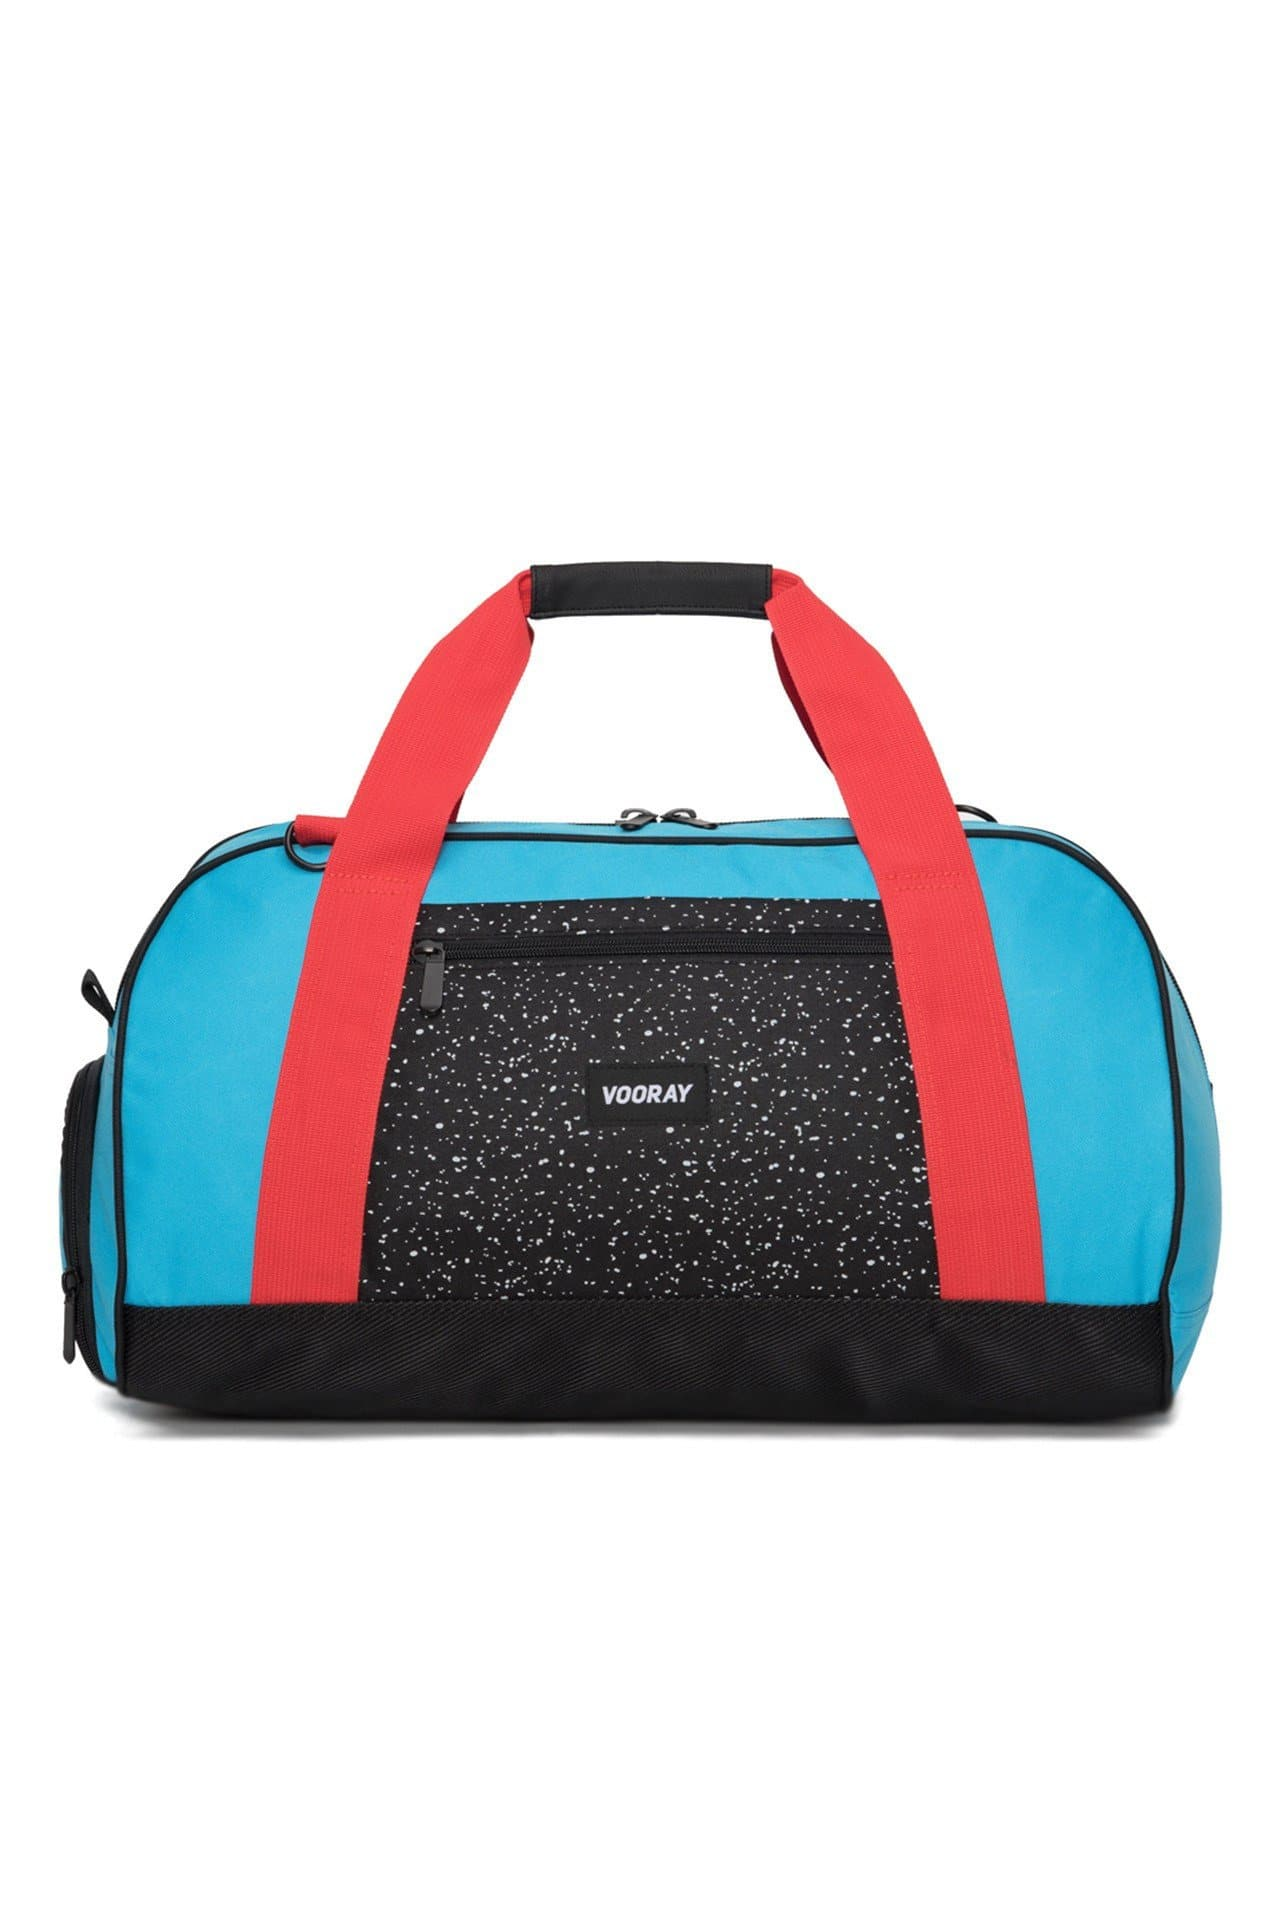 Vooray : Burner Gym Duffel Small